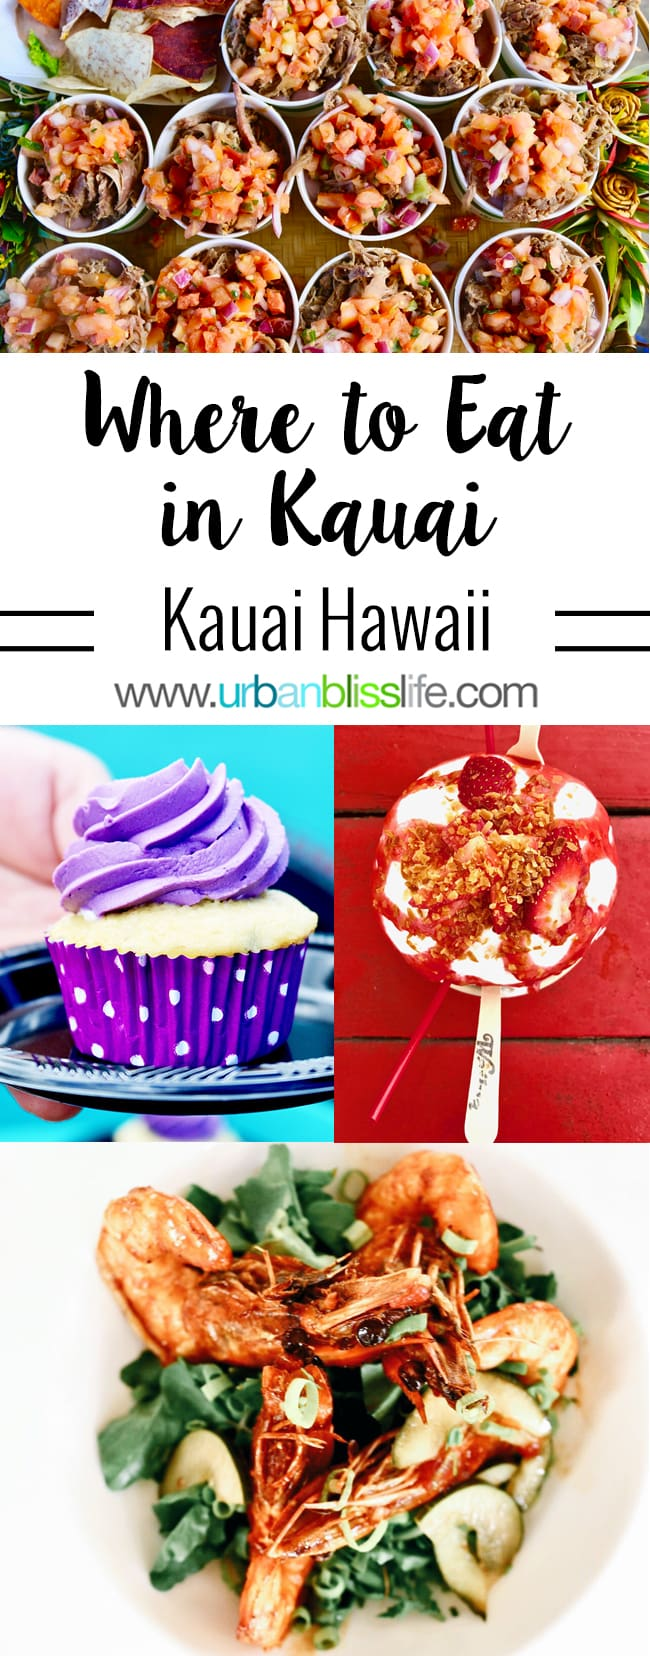 Where to Eat in Kauai: restaurant review on UrbanBlissLife.com